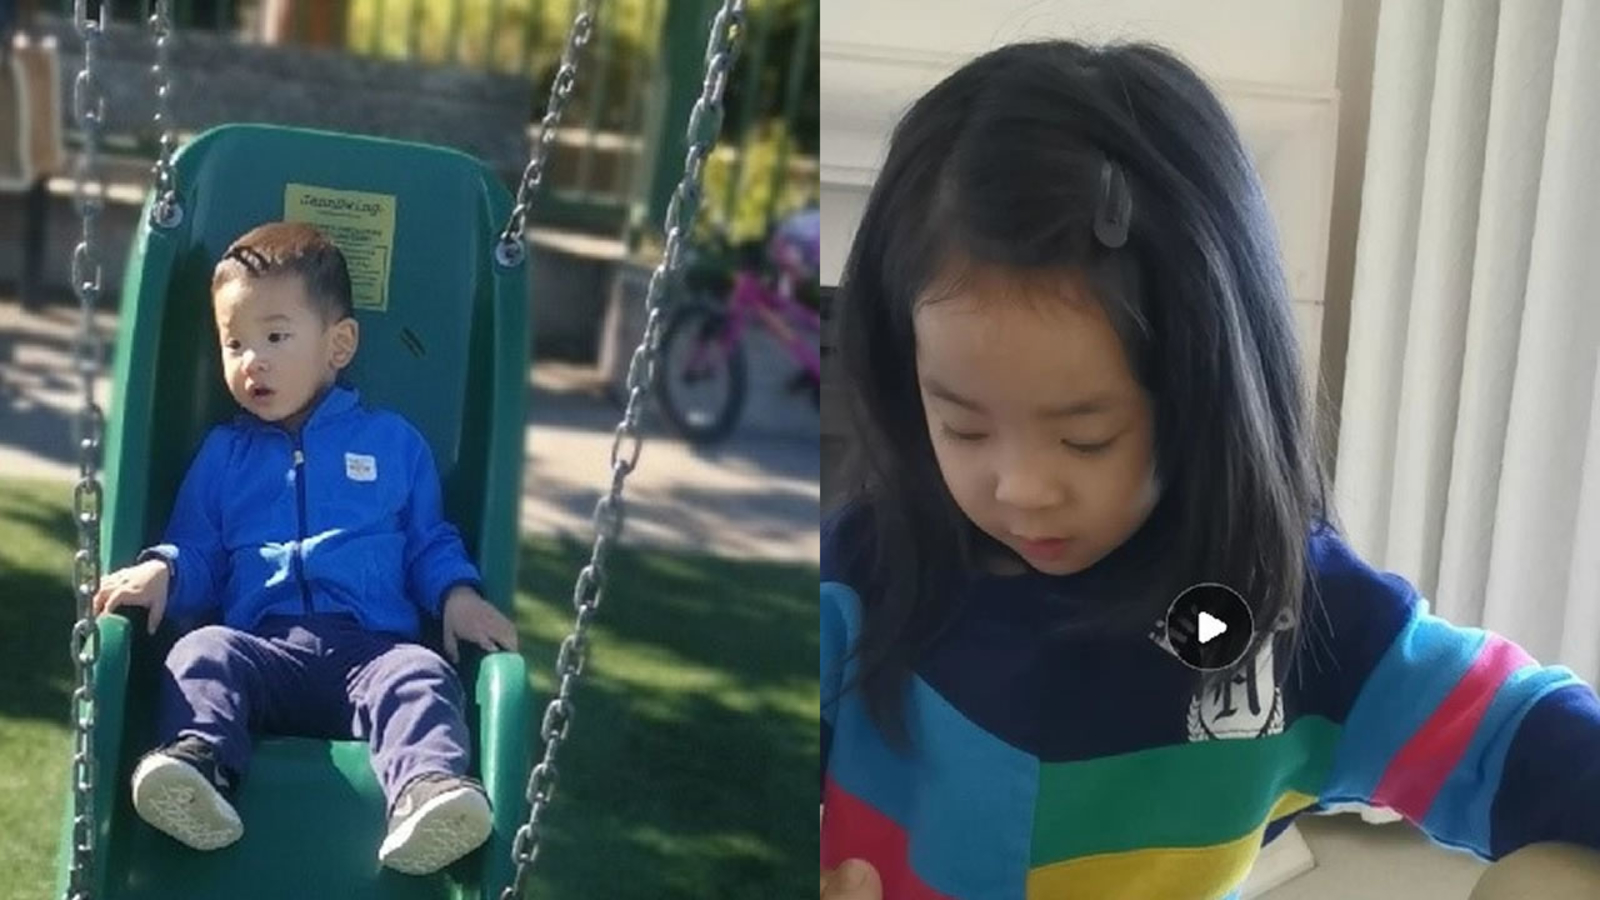 San Francisco police arrest suspect in carjacking, kidnapping of 2 children during DoorDash delivery; search for 1 suspect continues